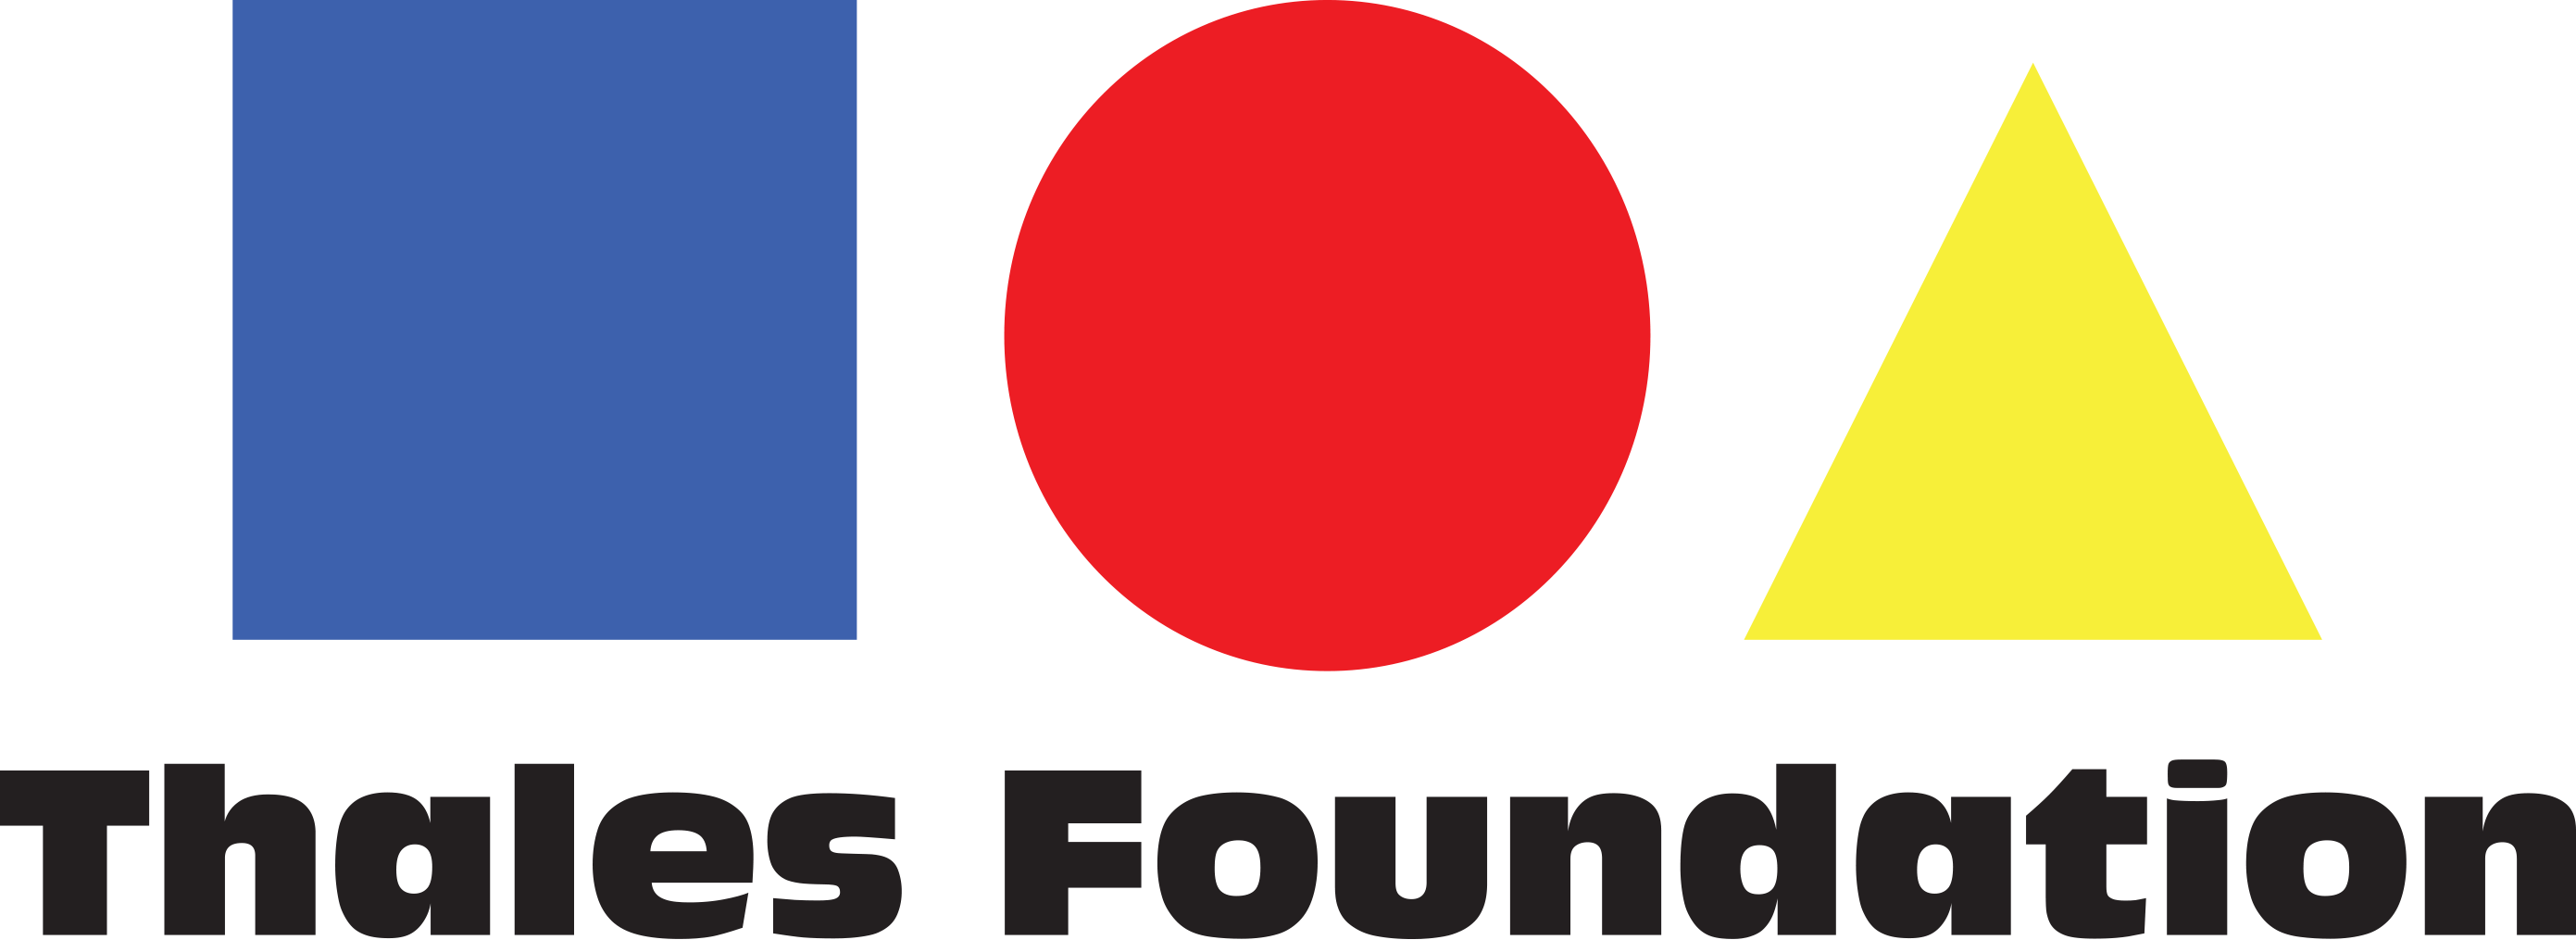 Thales Foundation Logo